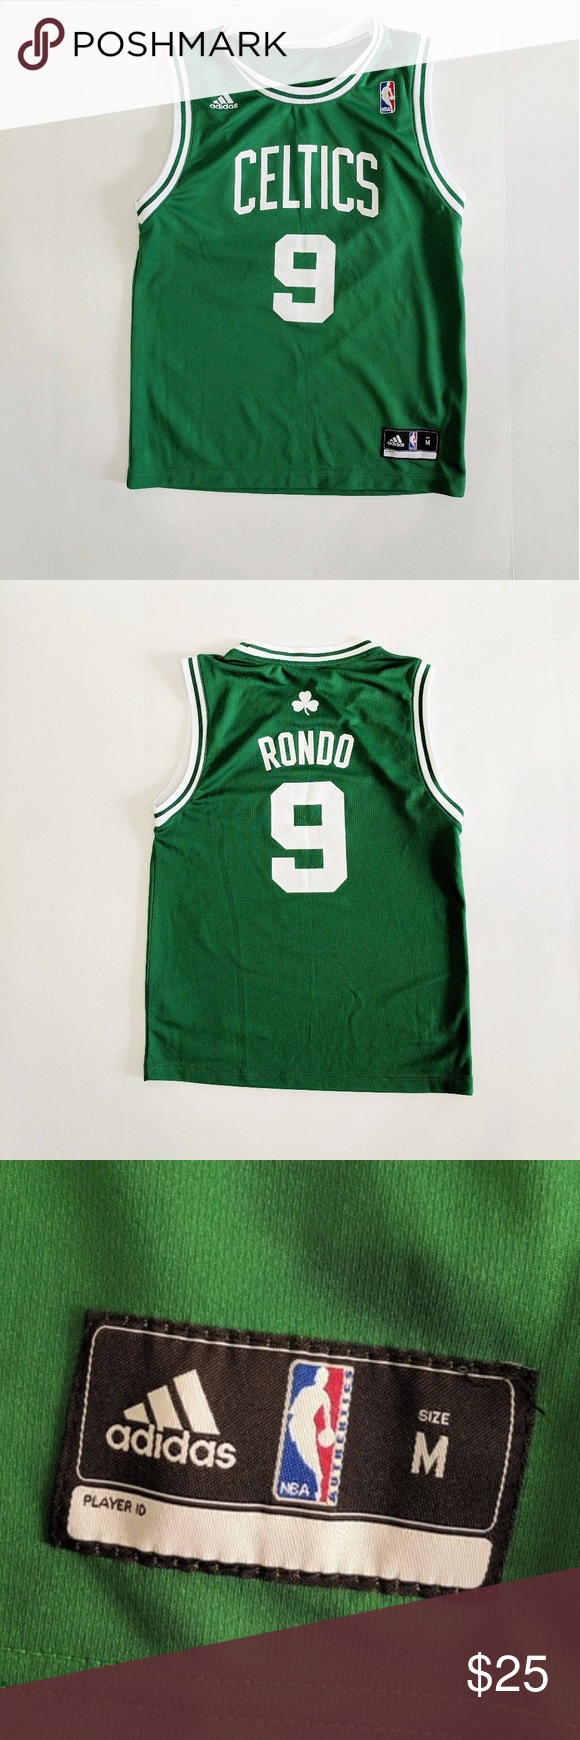 06ac54127dc Adidas Boston Celtics  9 Rondo Green Jersey Medium Great condition! Awesome Boston  Celtics Jersey